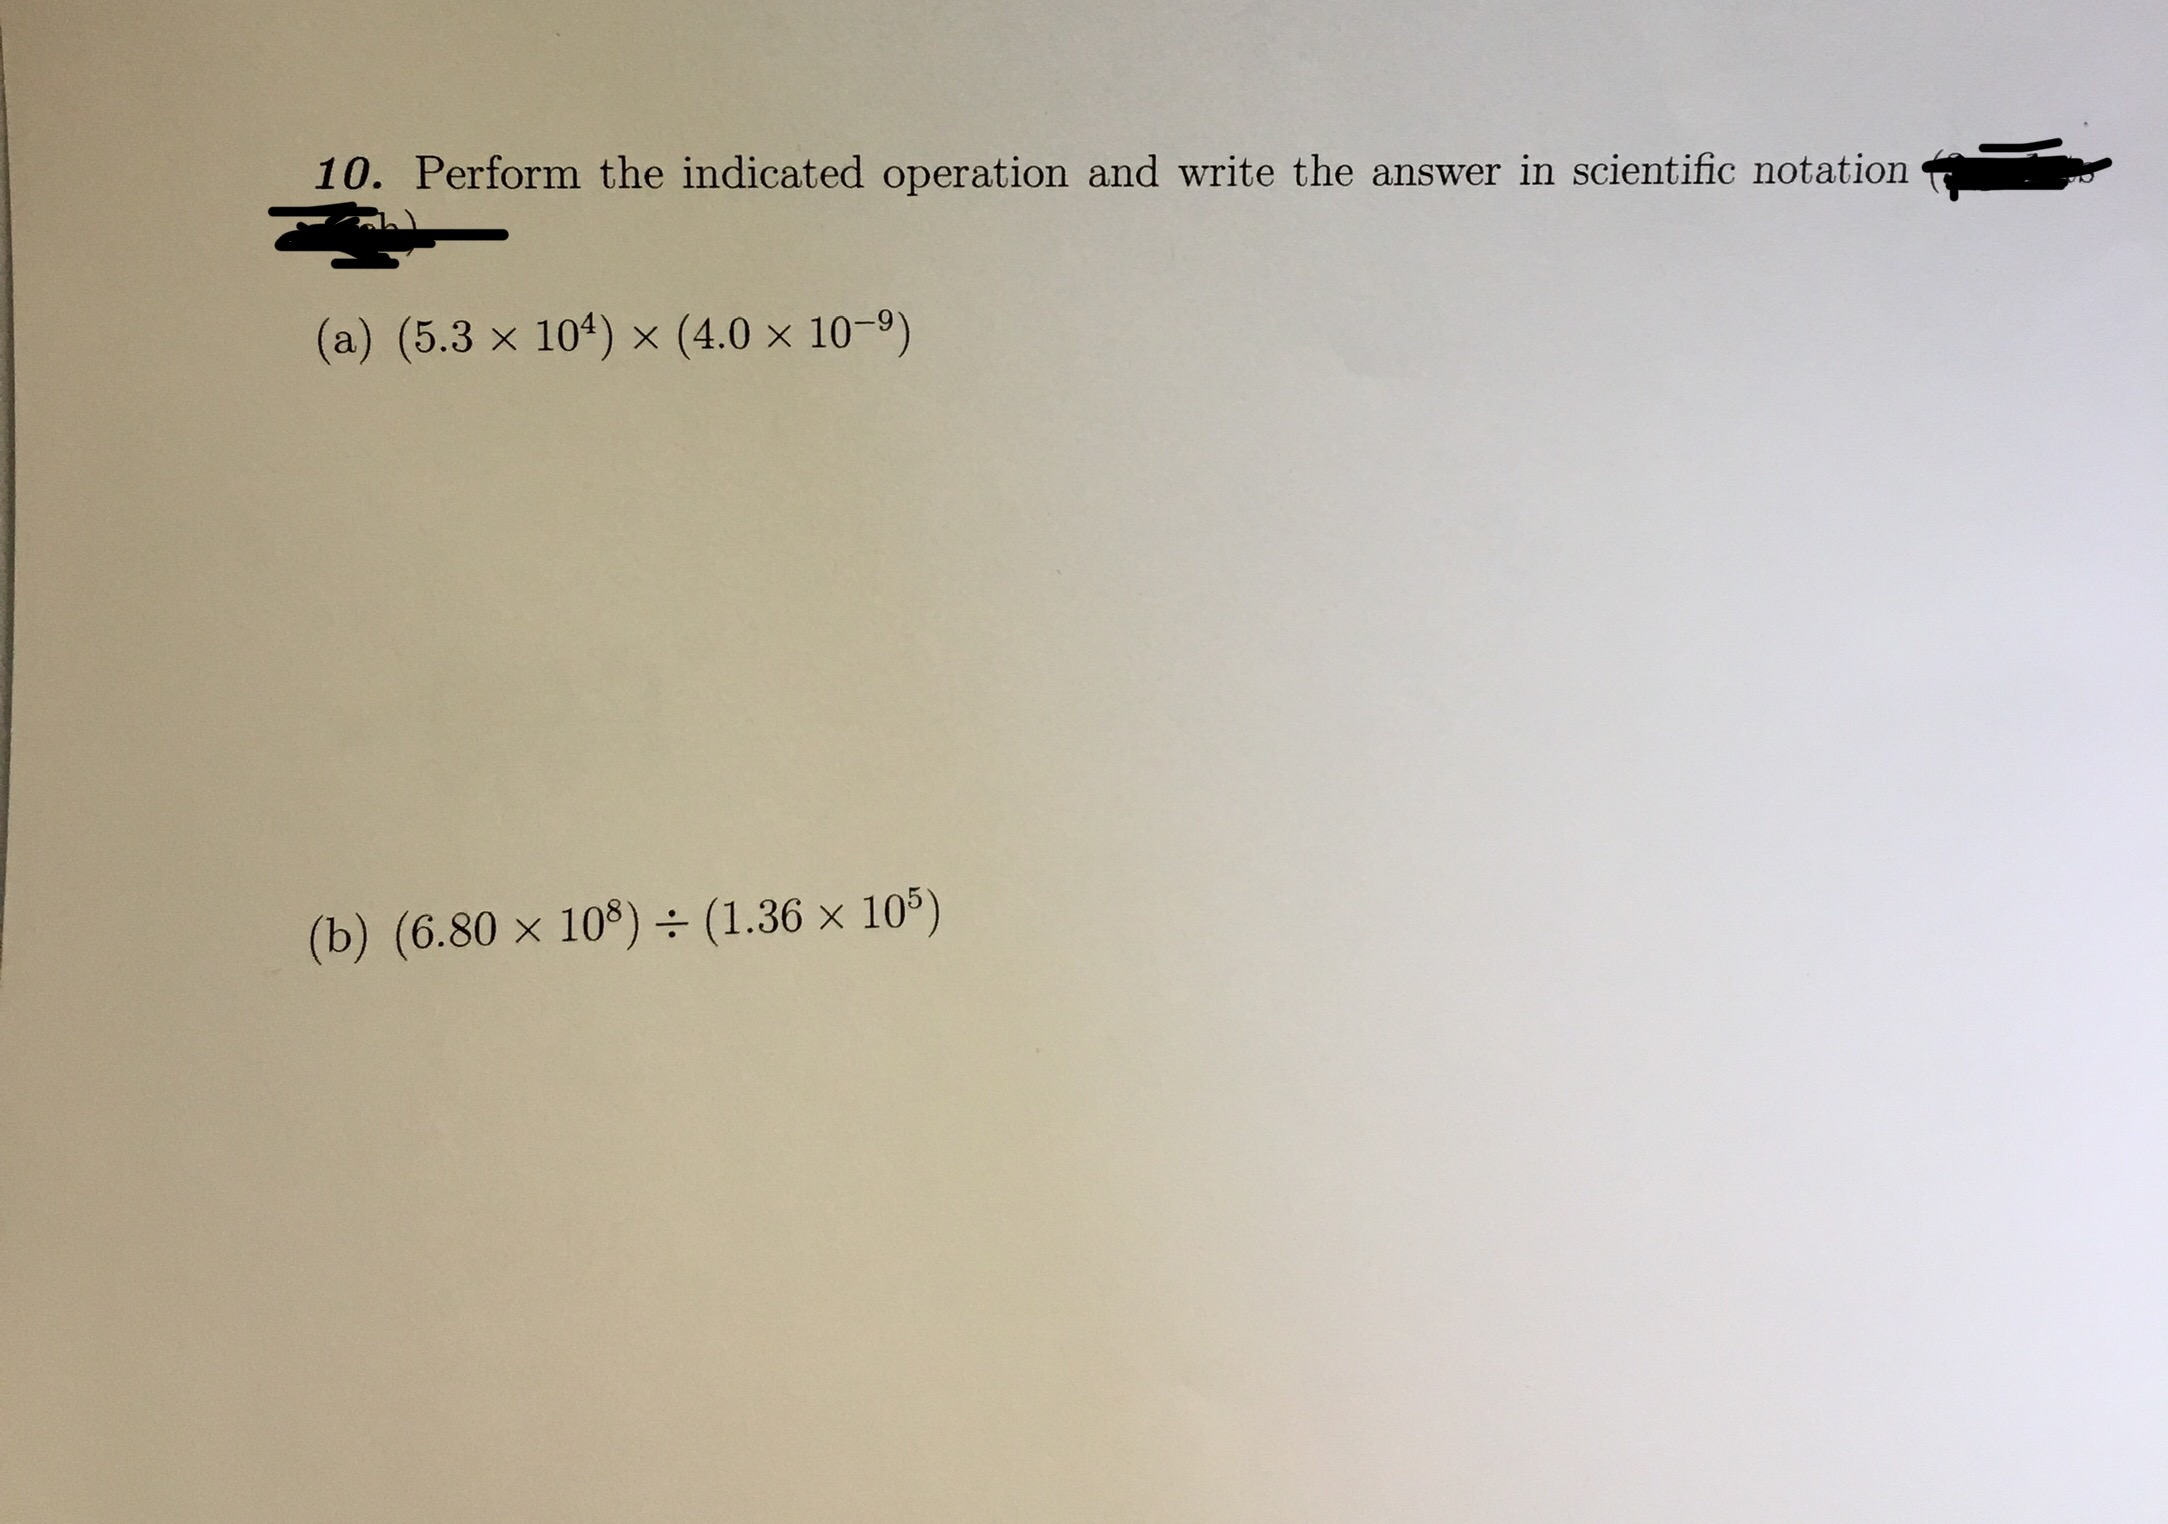 Answered 10 Perform The Indicated Operation And